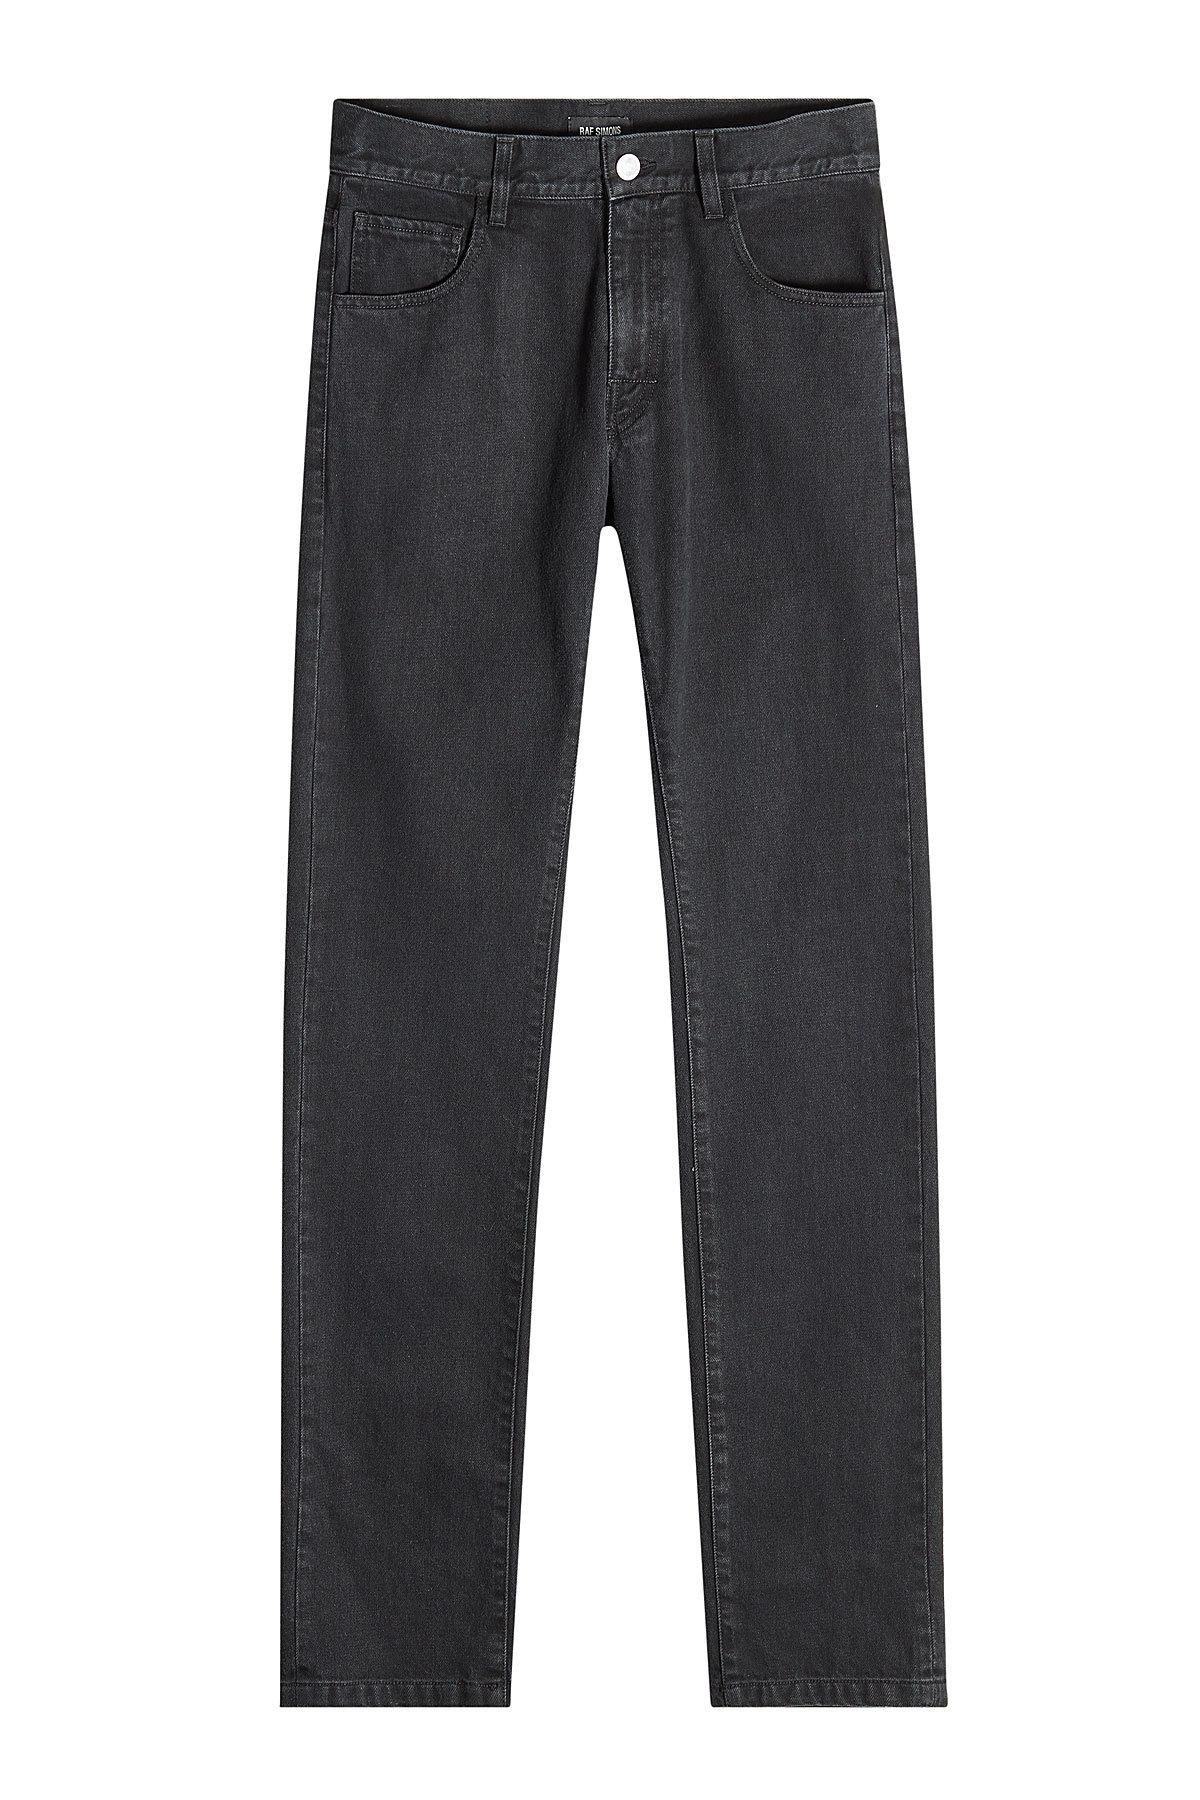 Raf Simons Slim Jeans With Duct Tape In Black